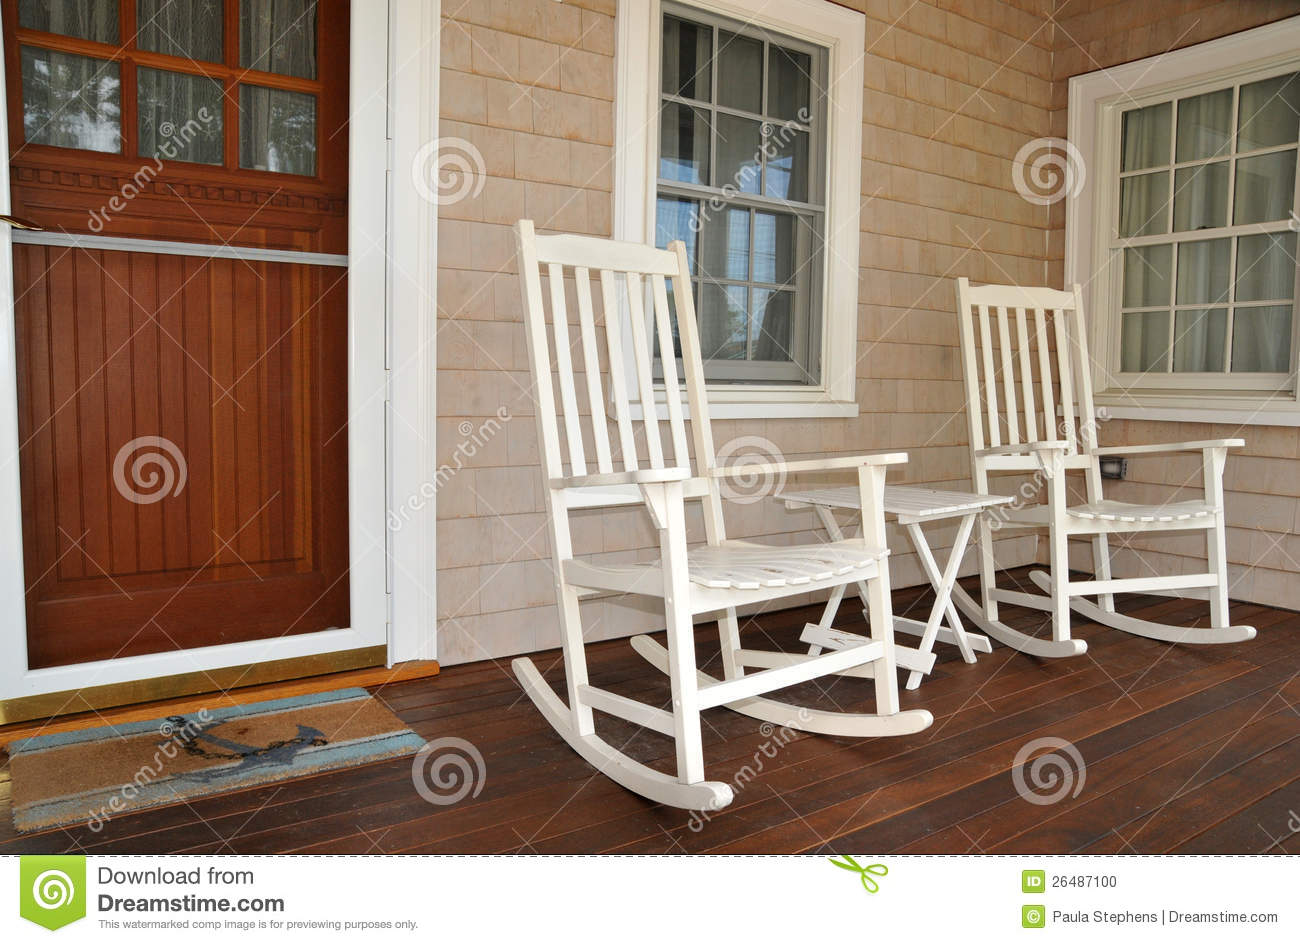 old fashioned rocking chairs xl desk chair on porch stock photo image 26487100